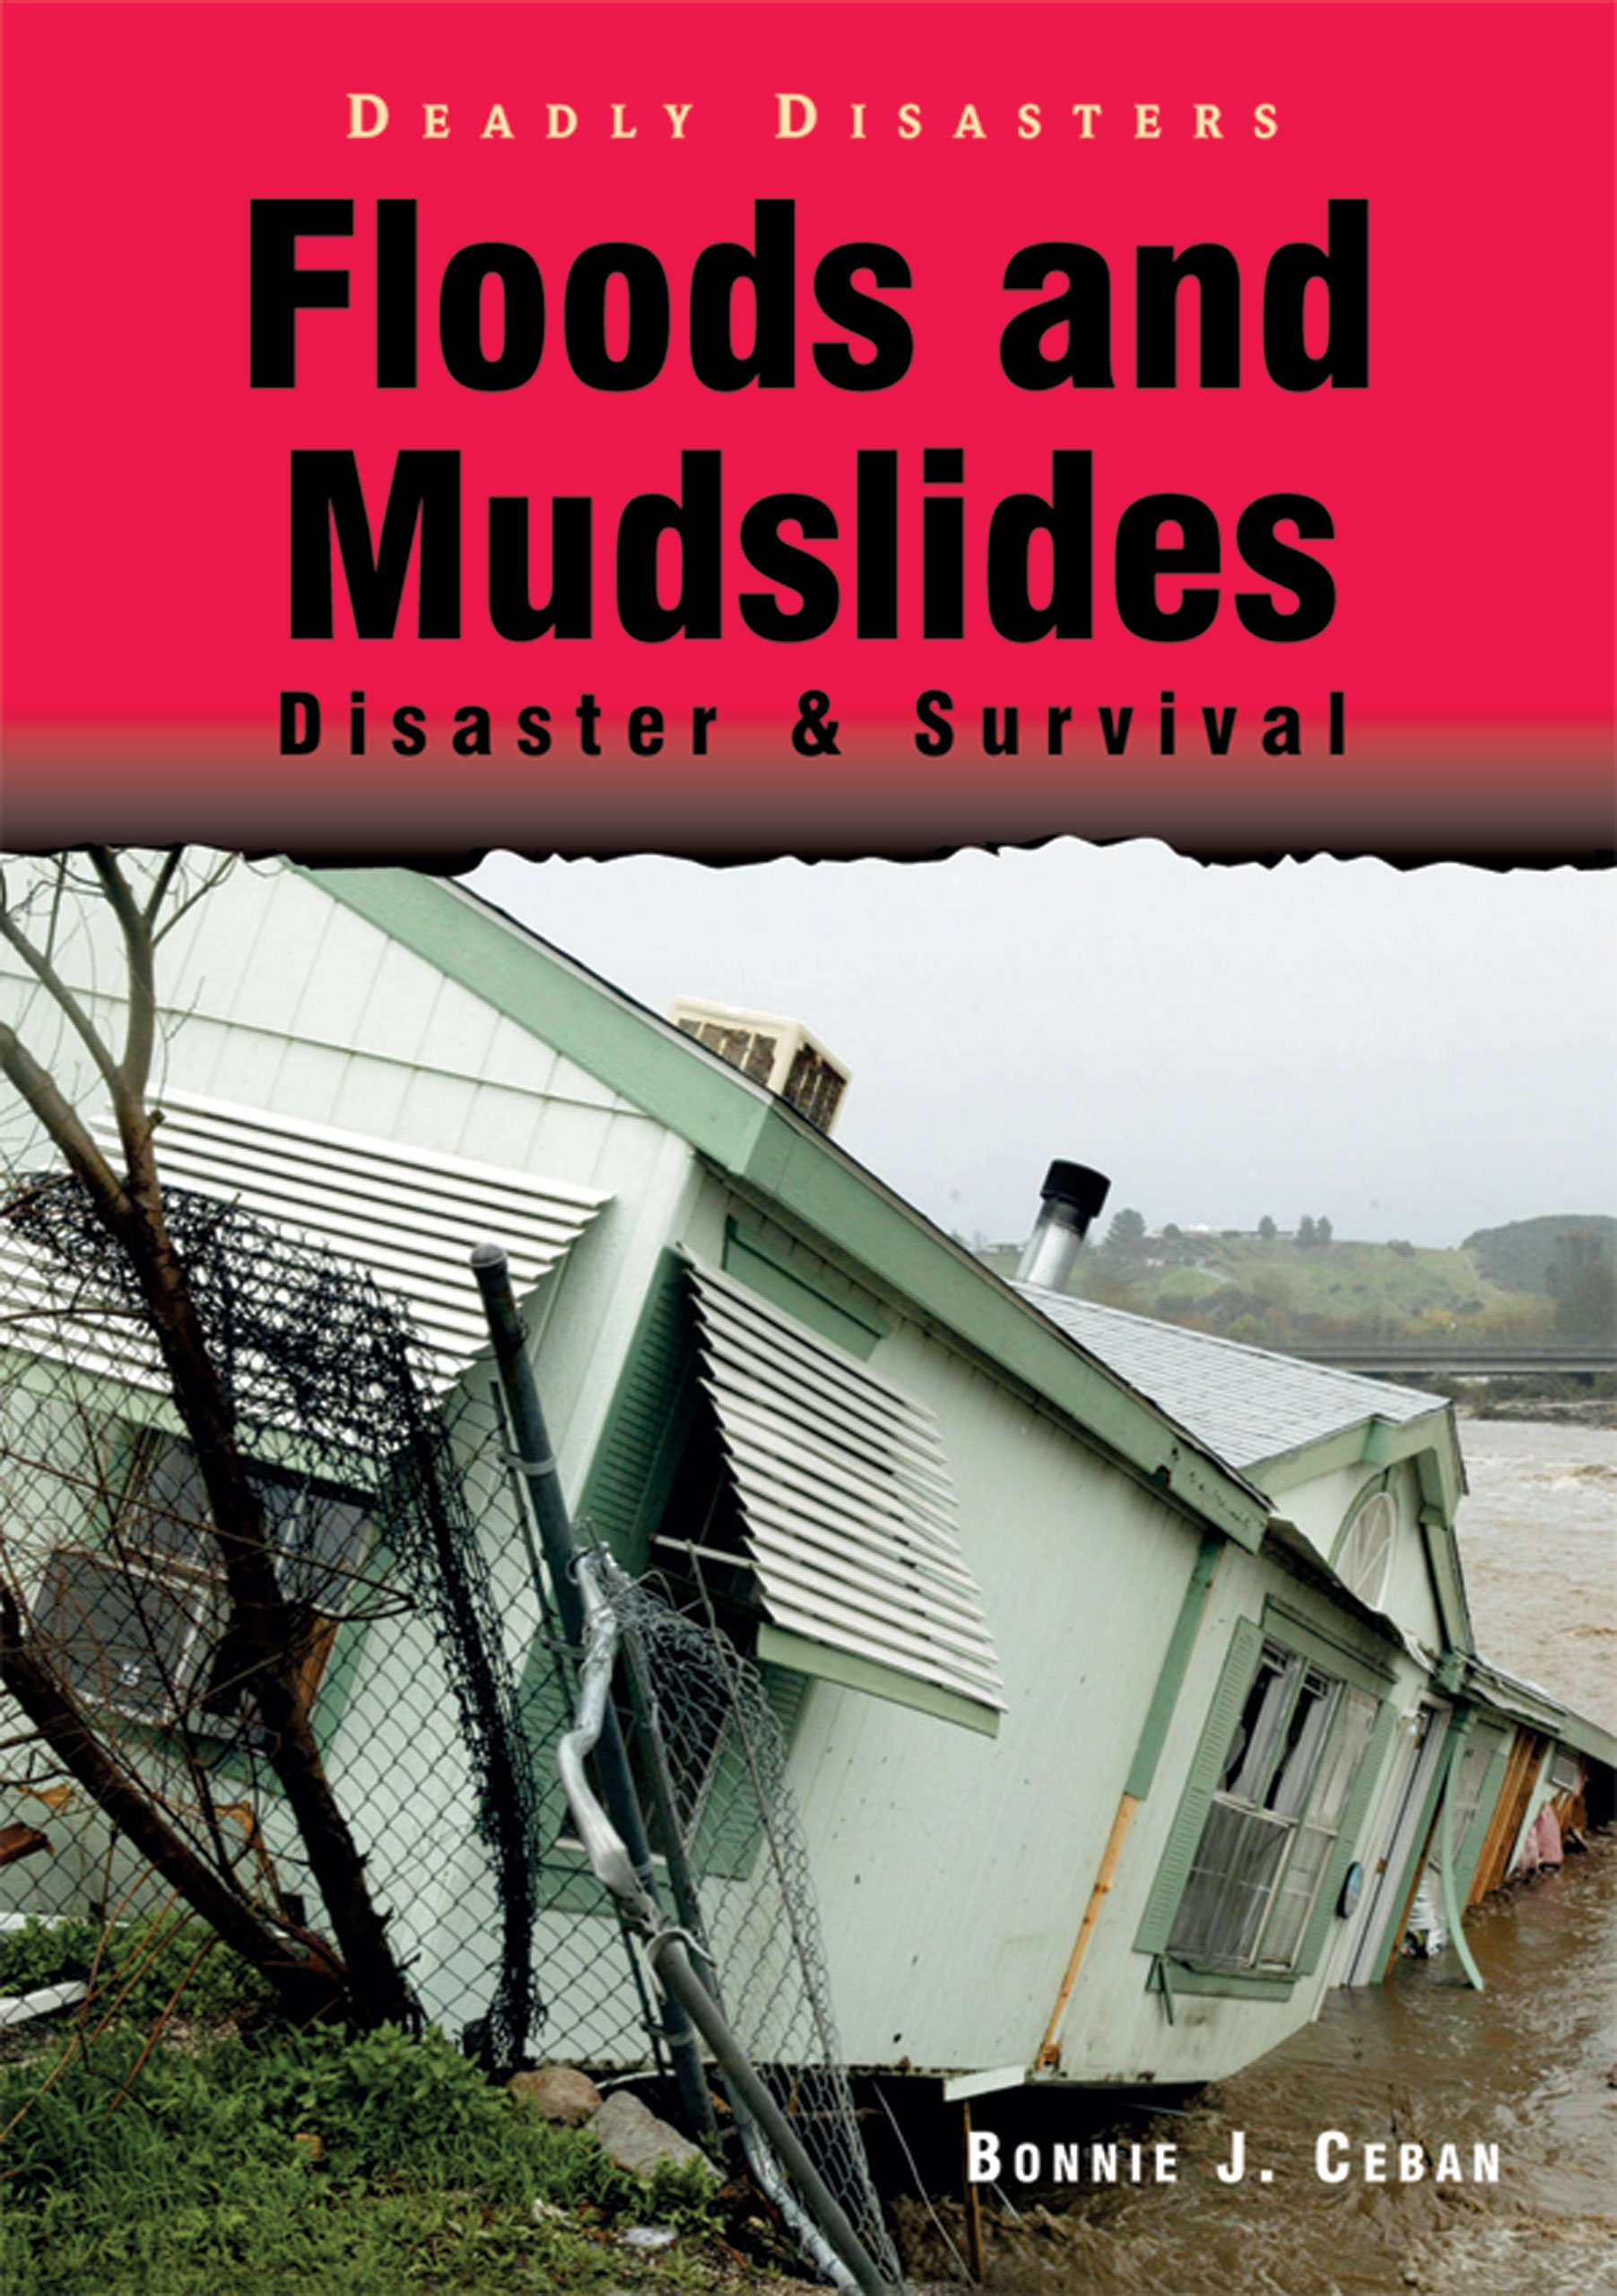 Floods and Mudslides: Disaster & Survival (Deadly Disasters) PDF